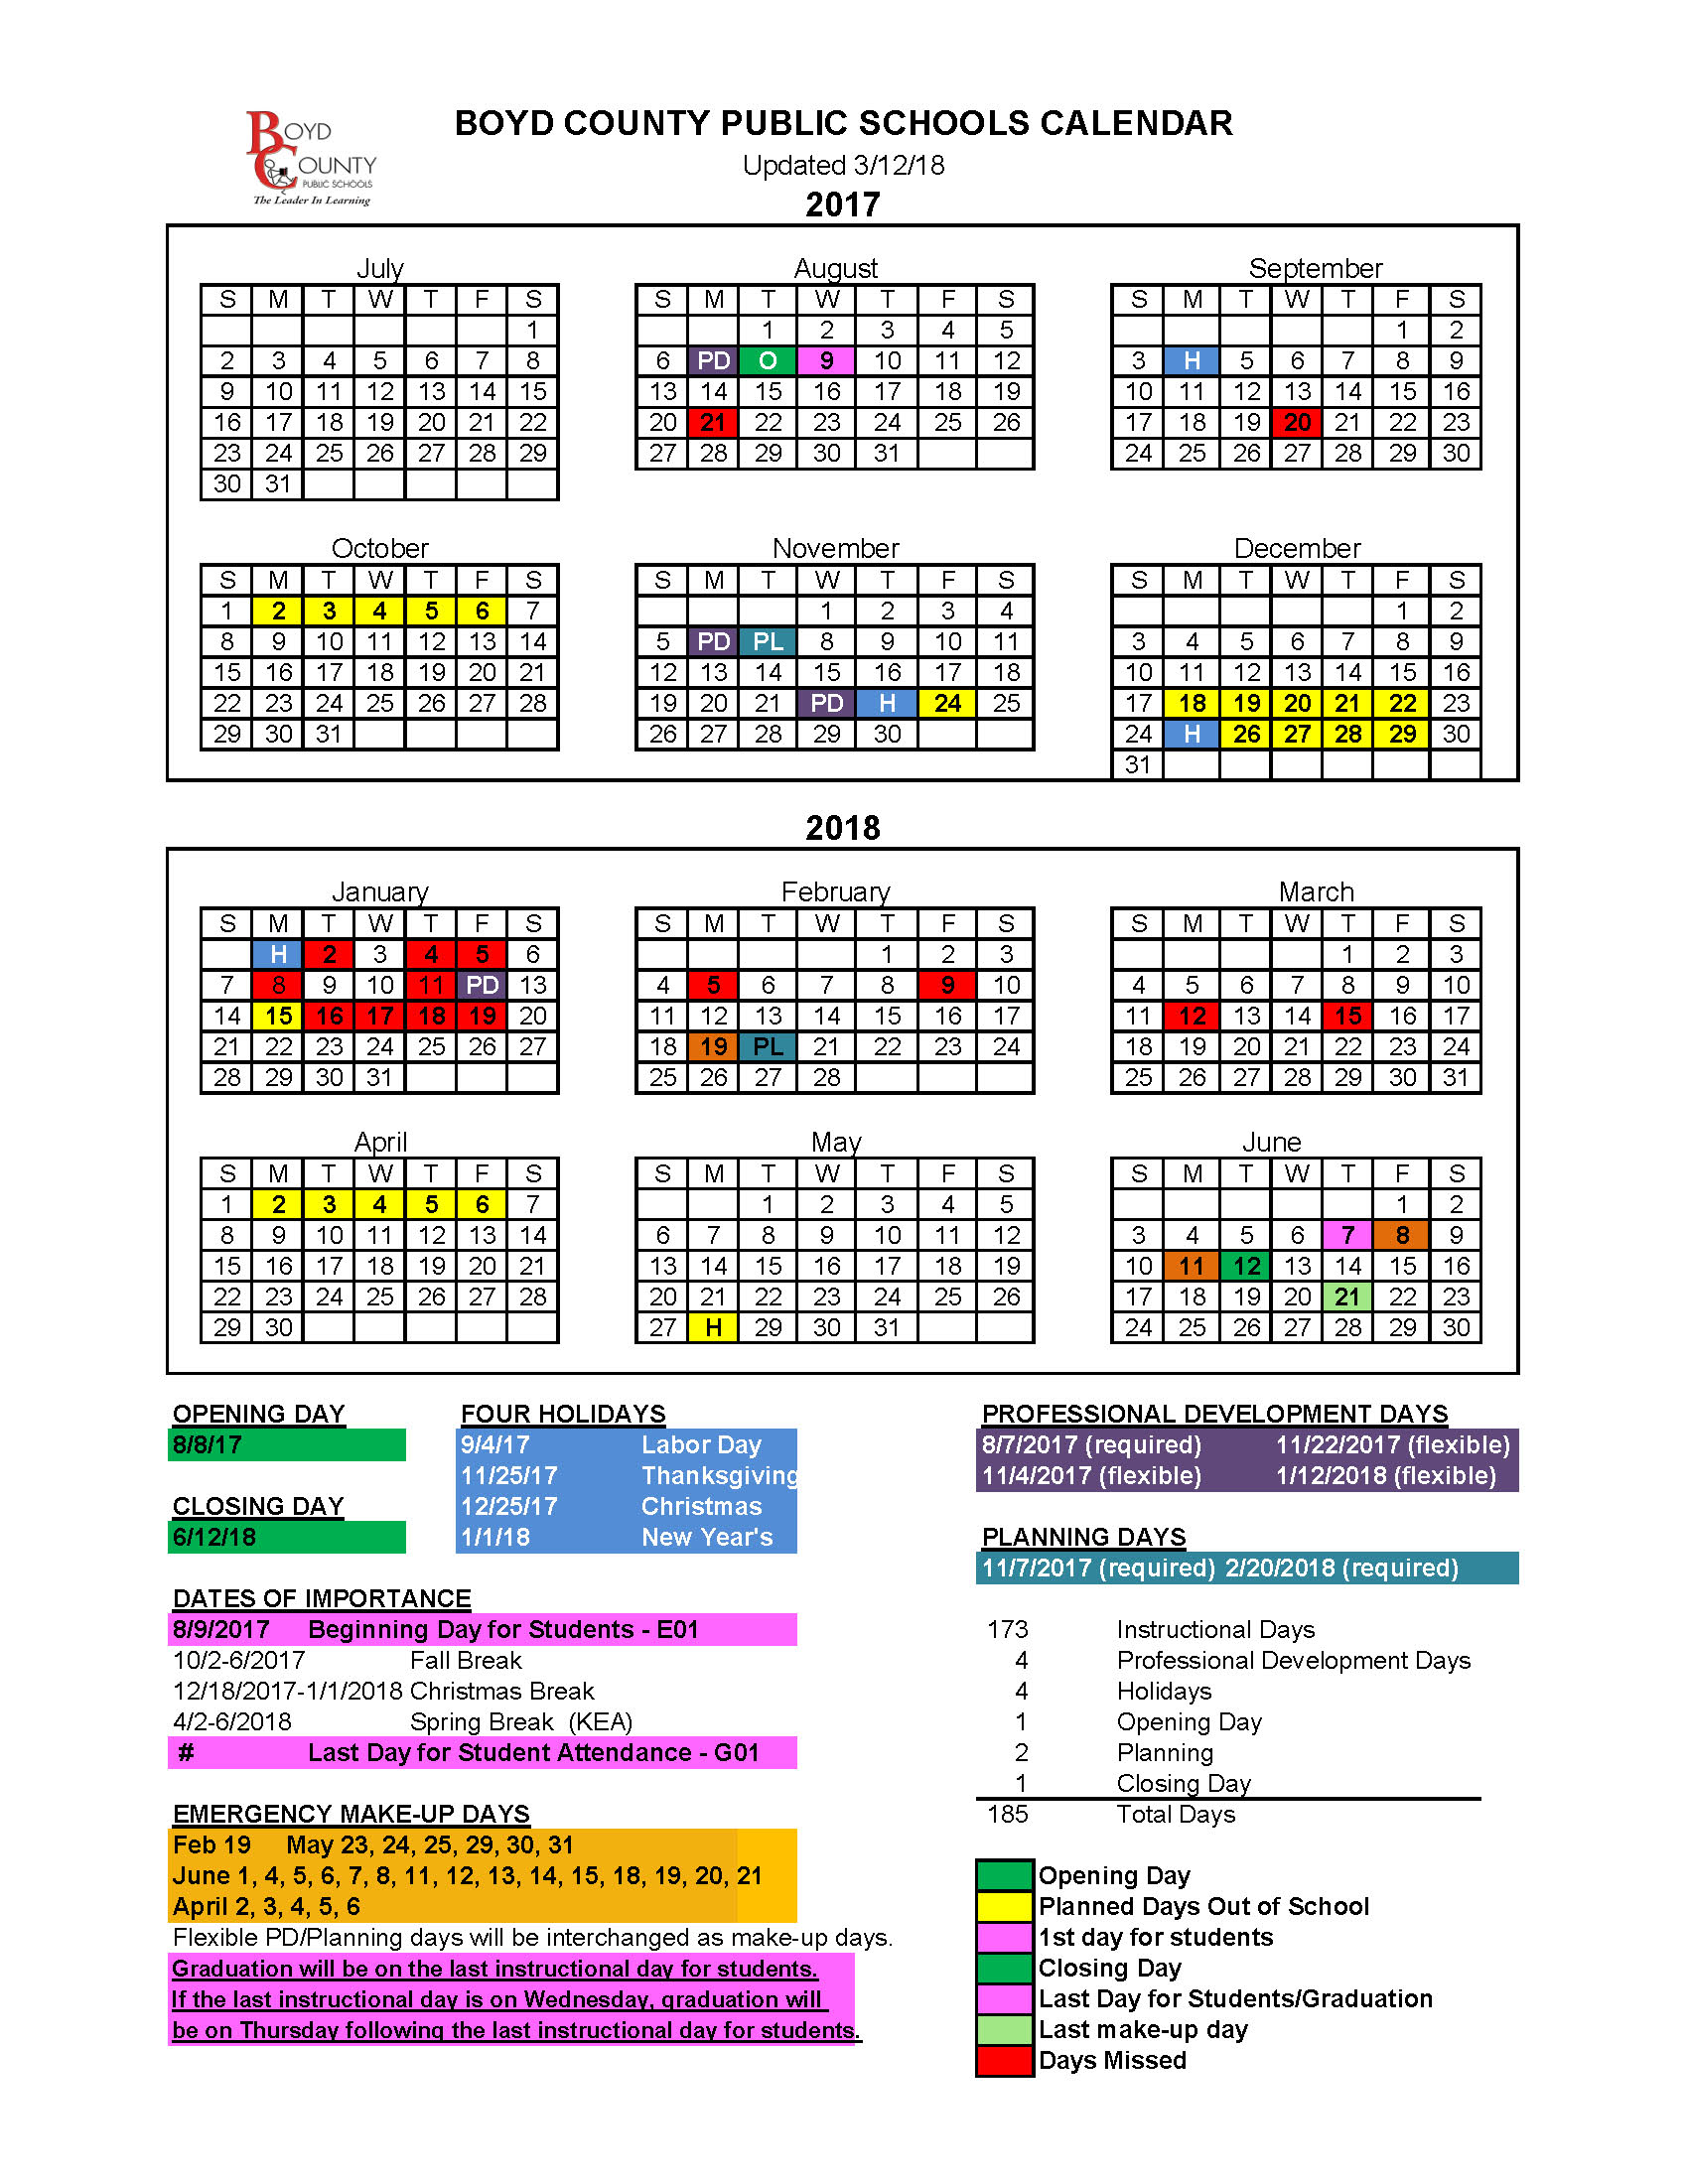 BCPS updated calendar for 17-18.